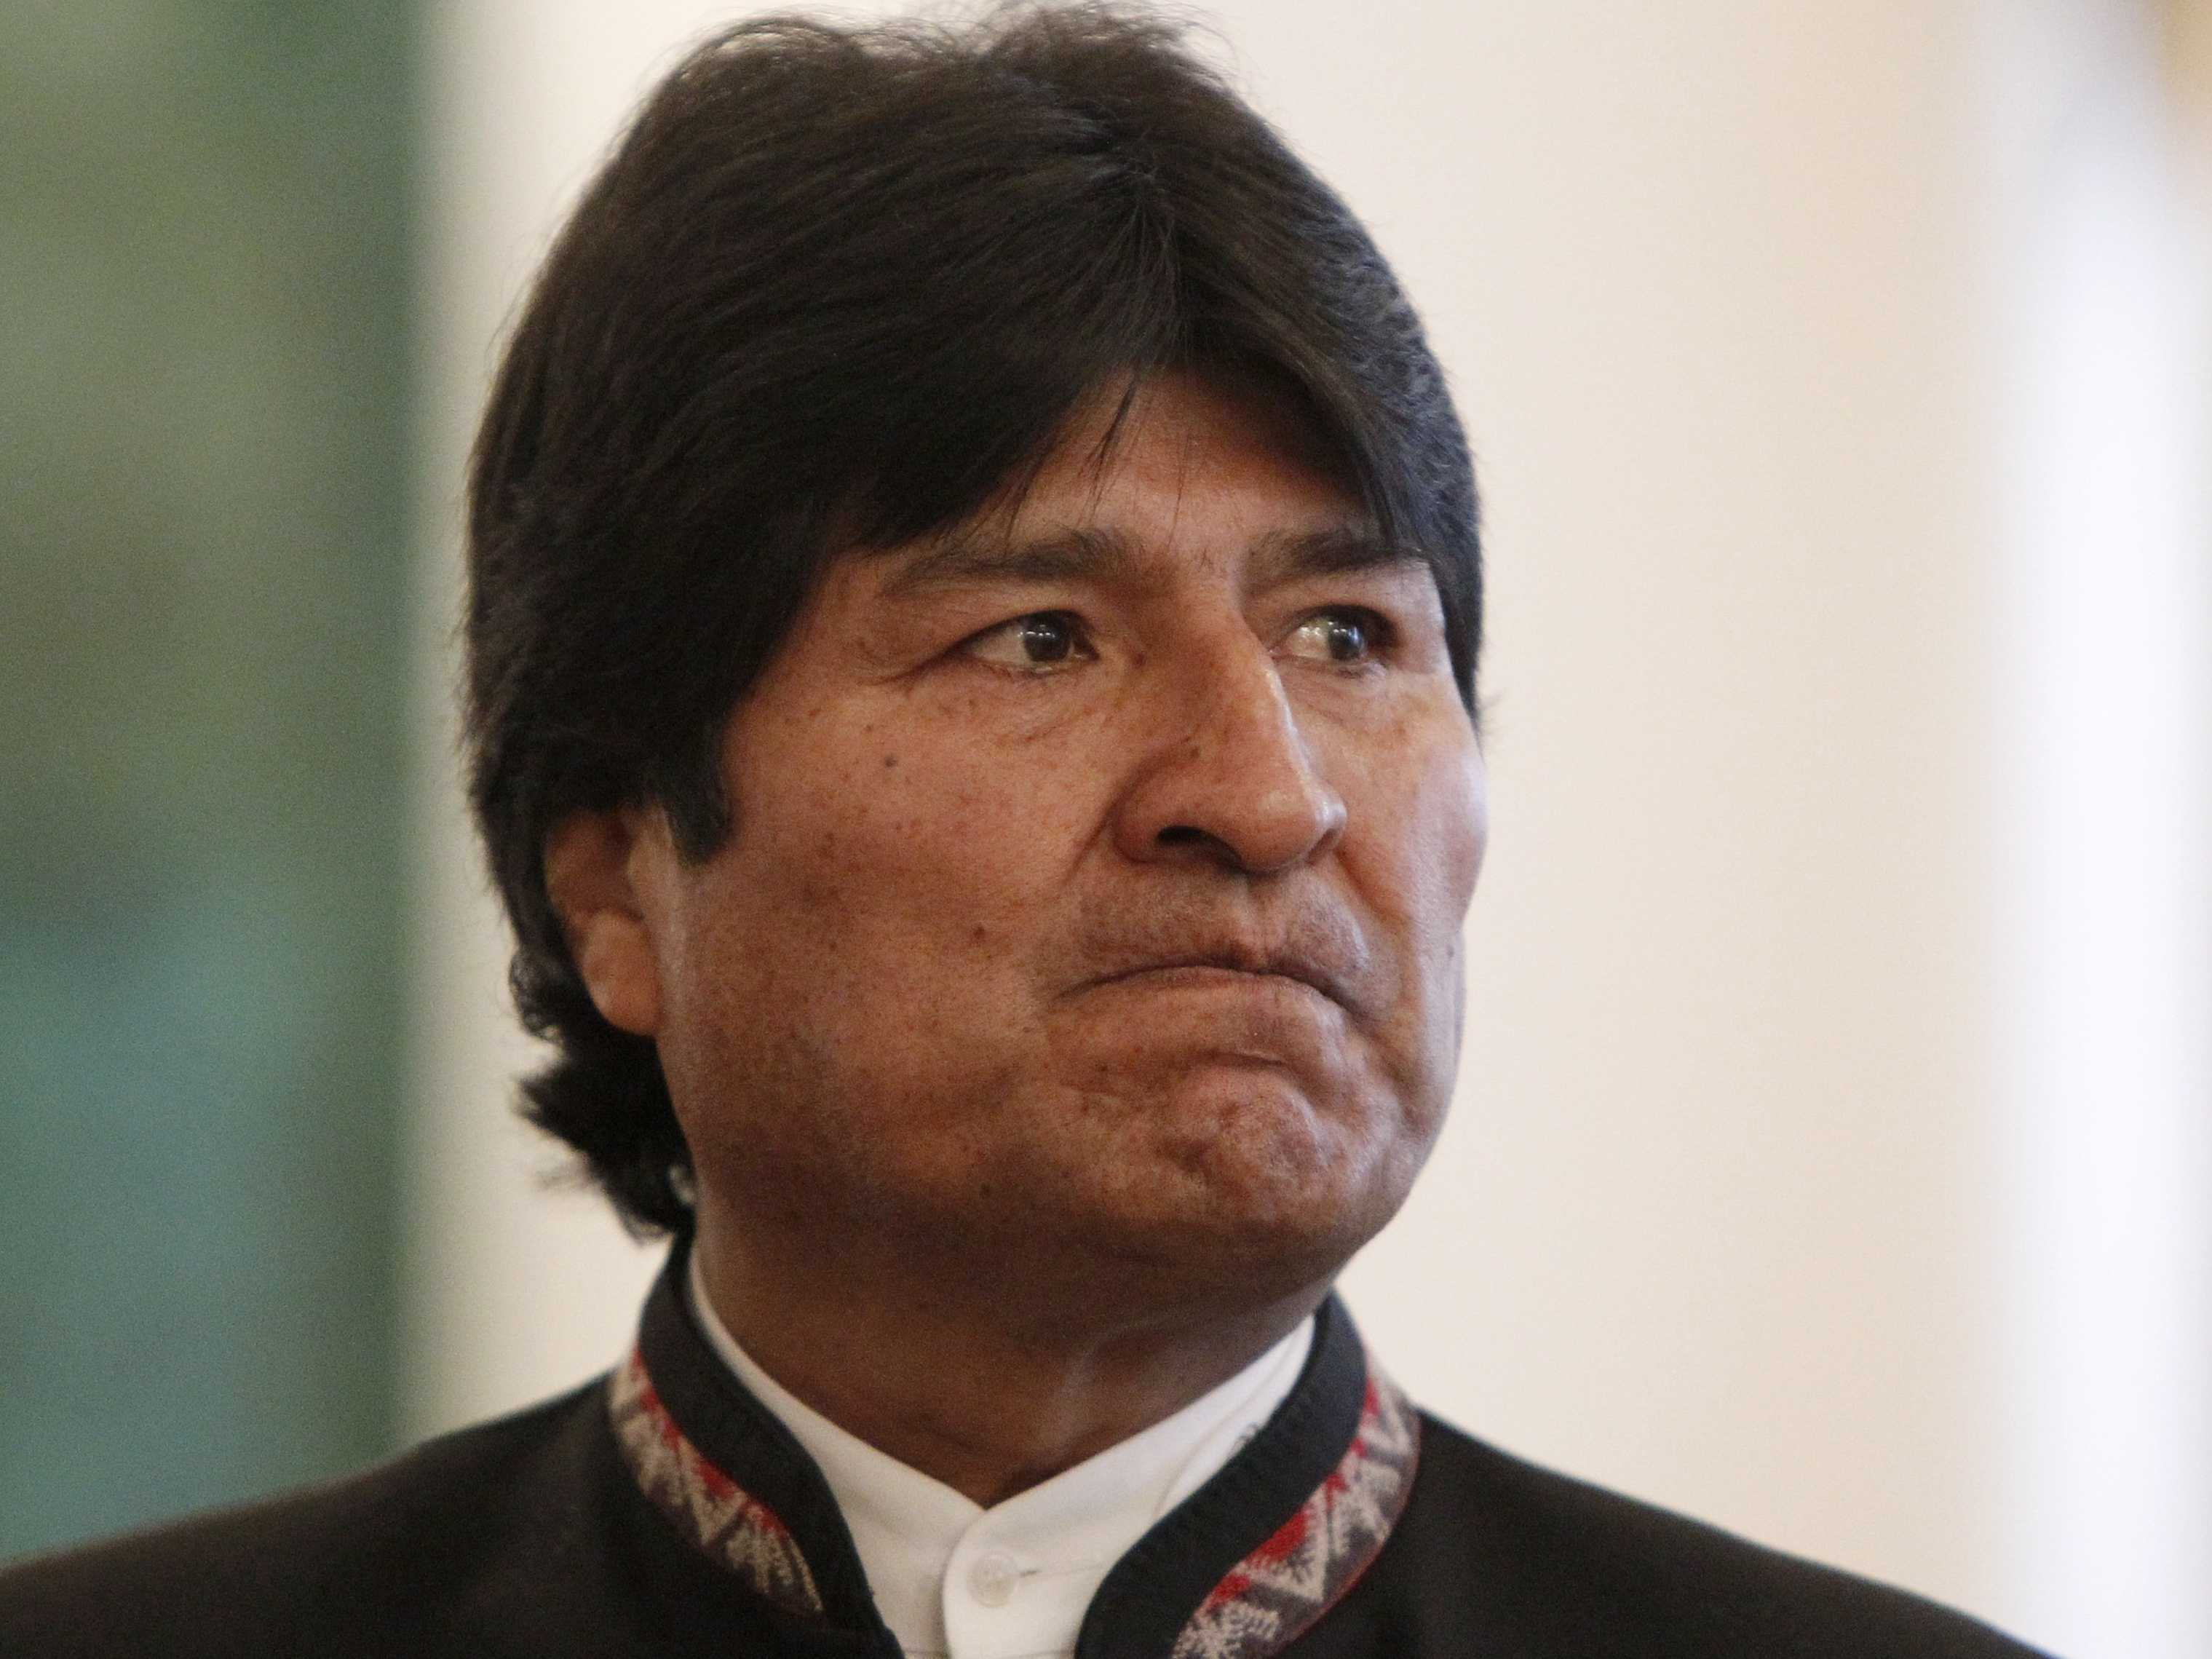 Bolivia Presidet Evo Morales (photo credit: www.businessinsider.com)